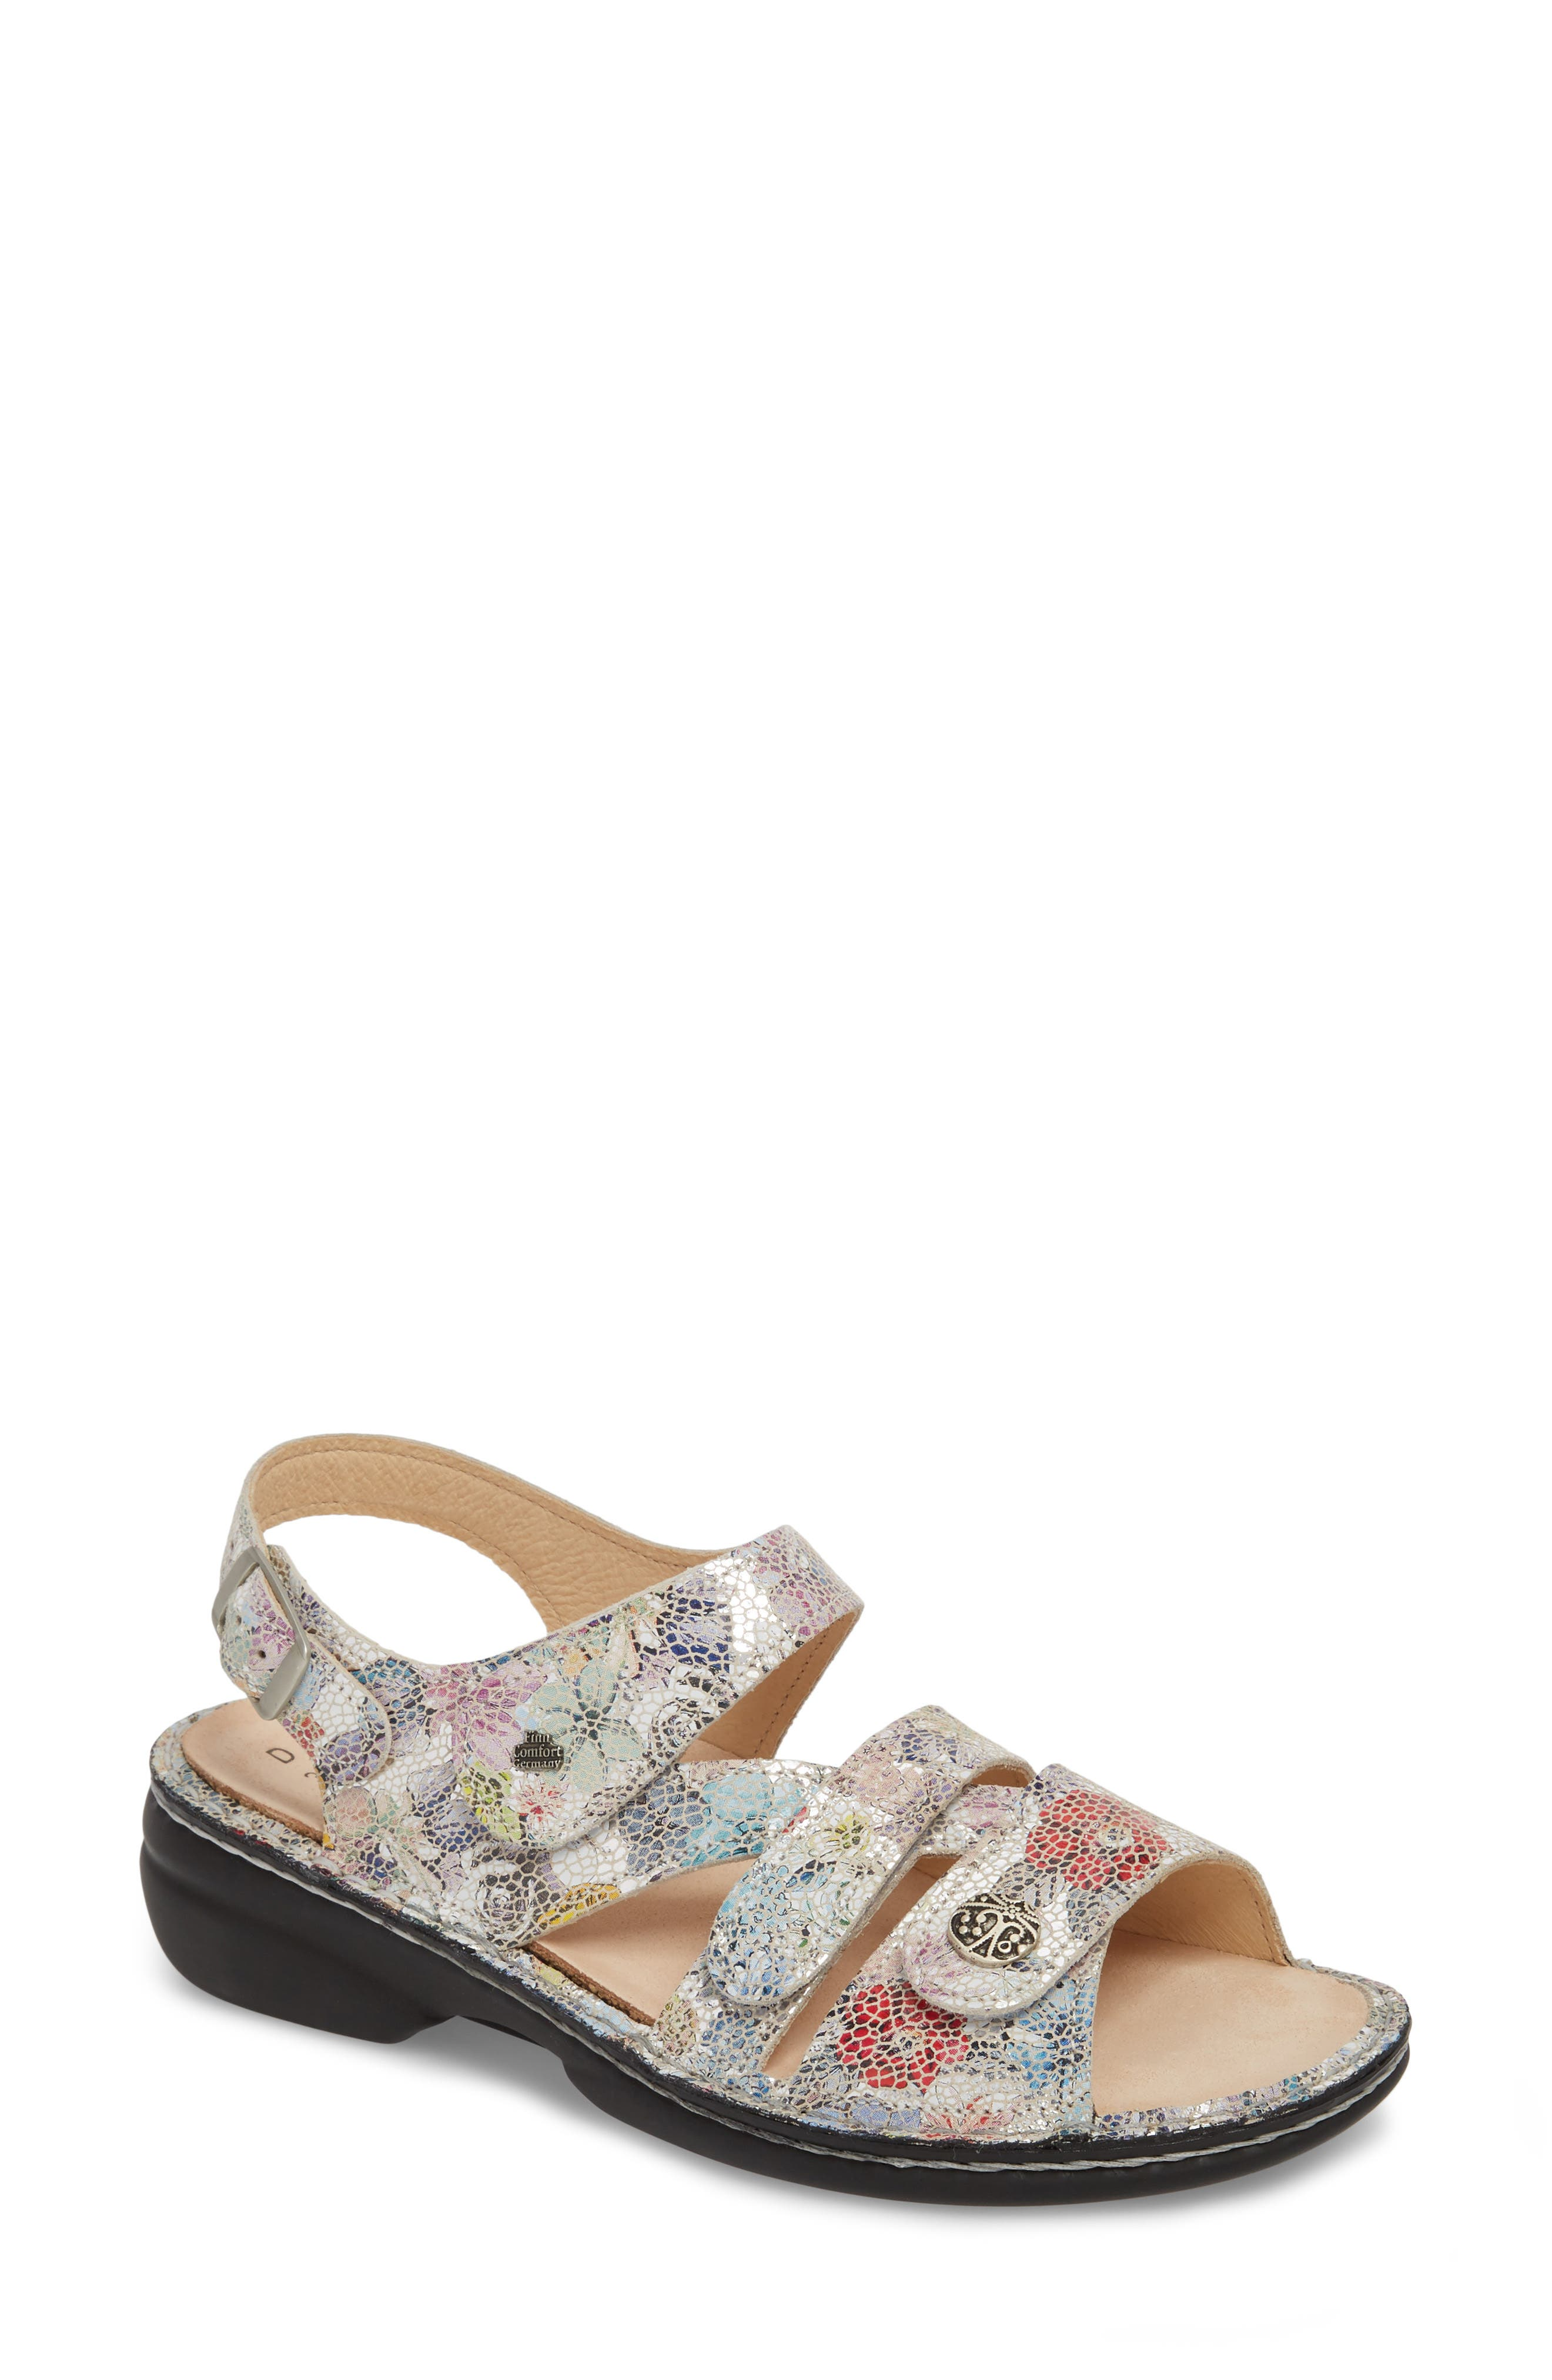 'Gomera' Sandal,                         Main,                         color, Multi Flower Printed Leather